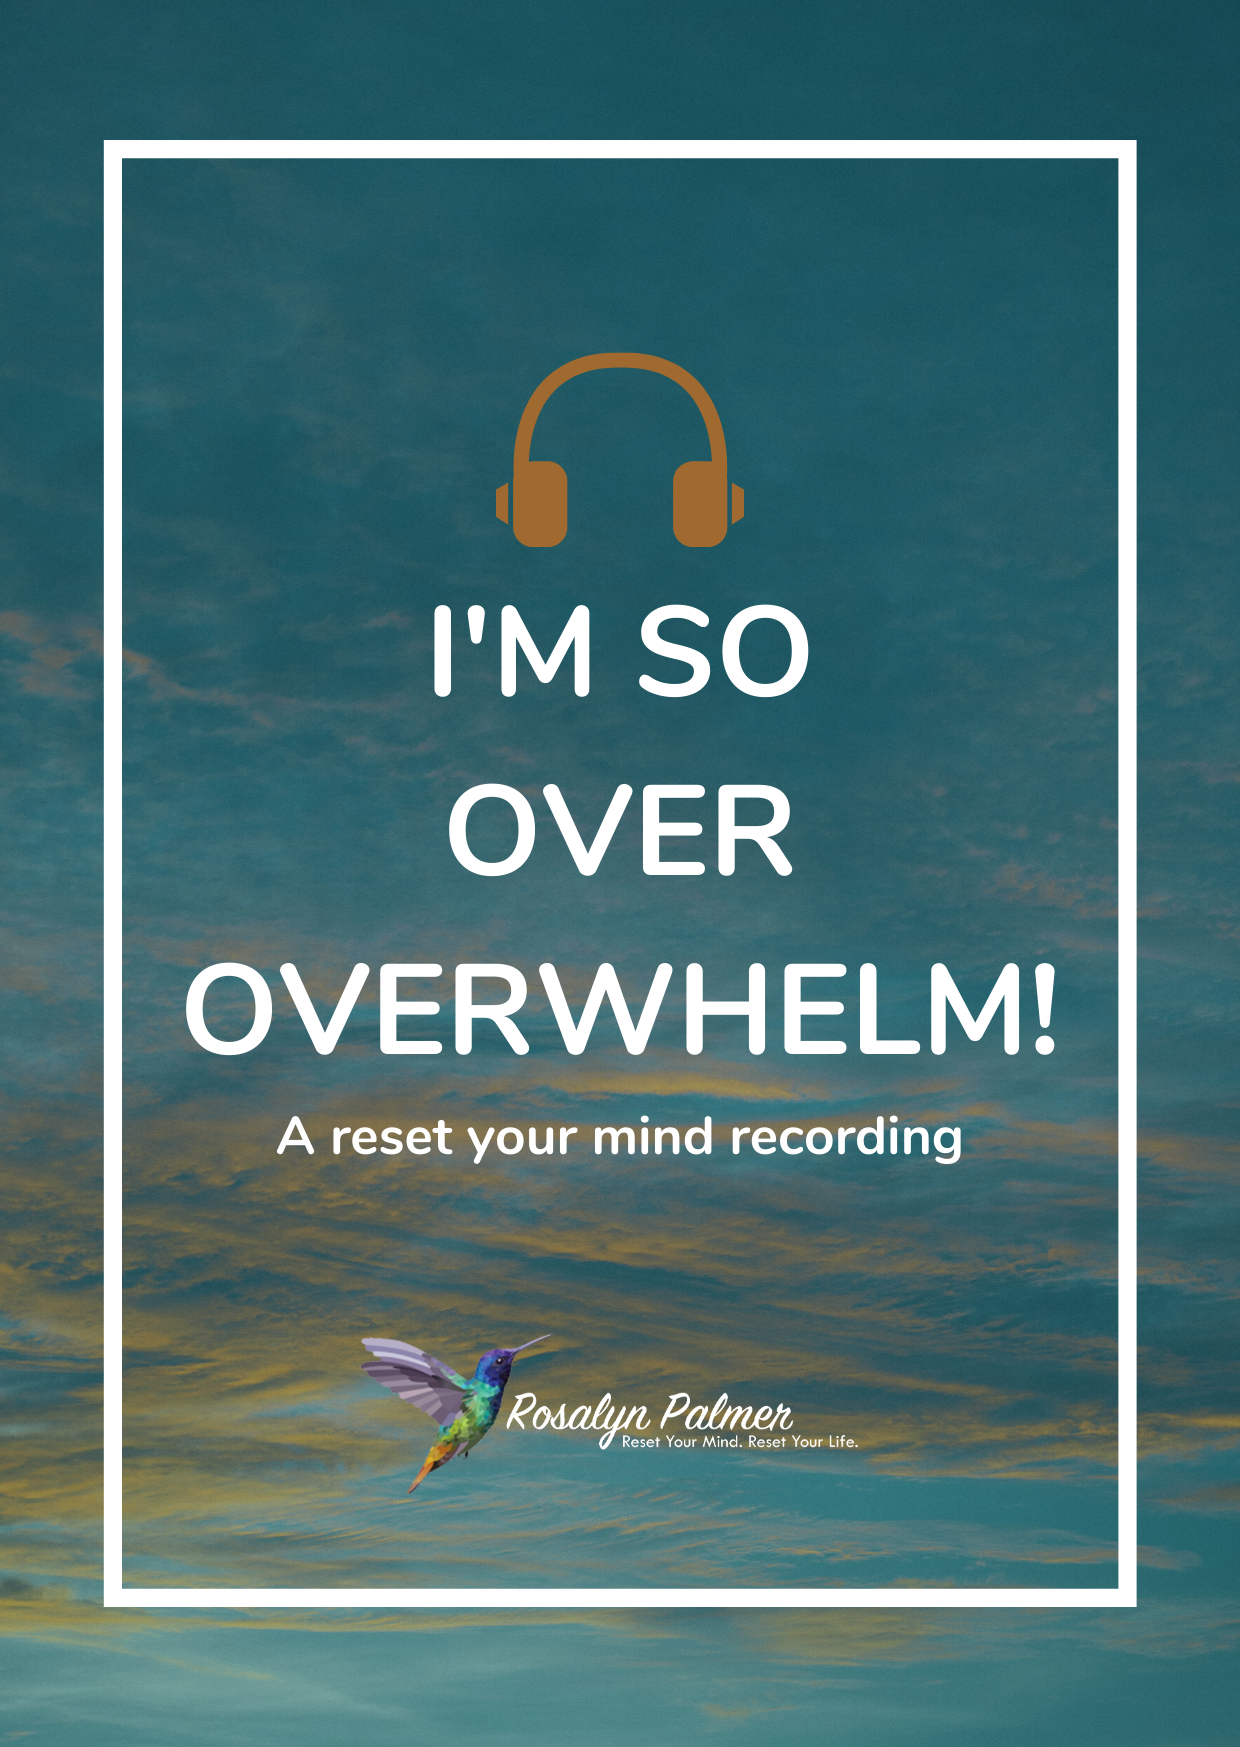 I'm so over overwhelm